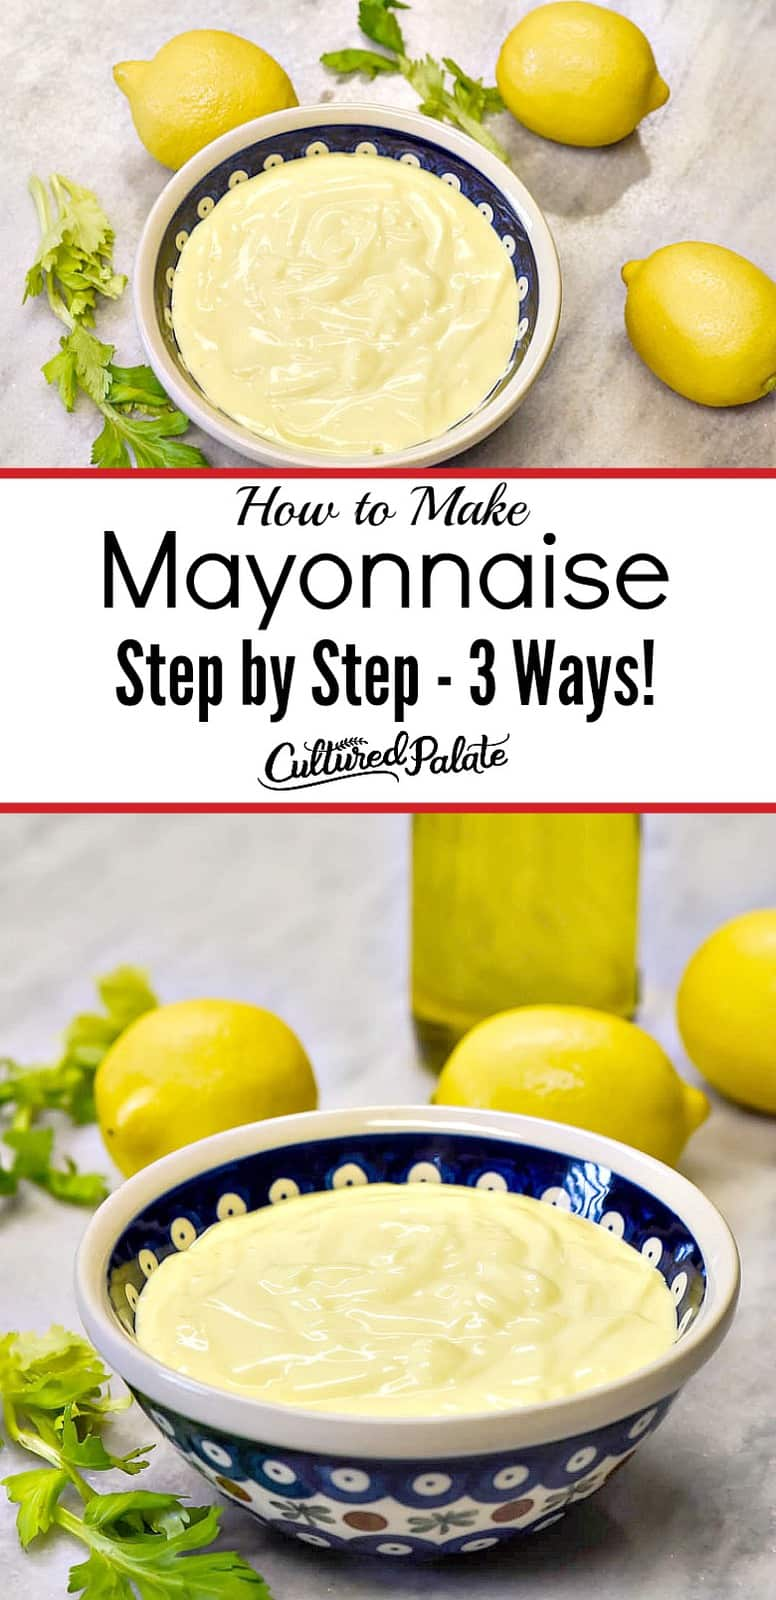 Homemade Mayonnaise recipe shown from above and the side in two images in blue bowl with text overlay.